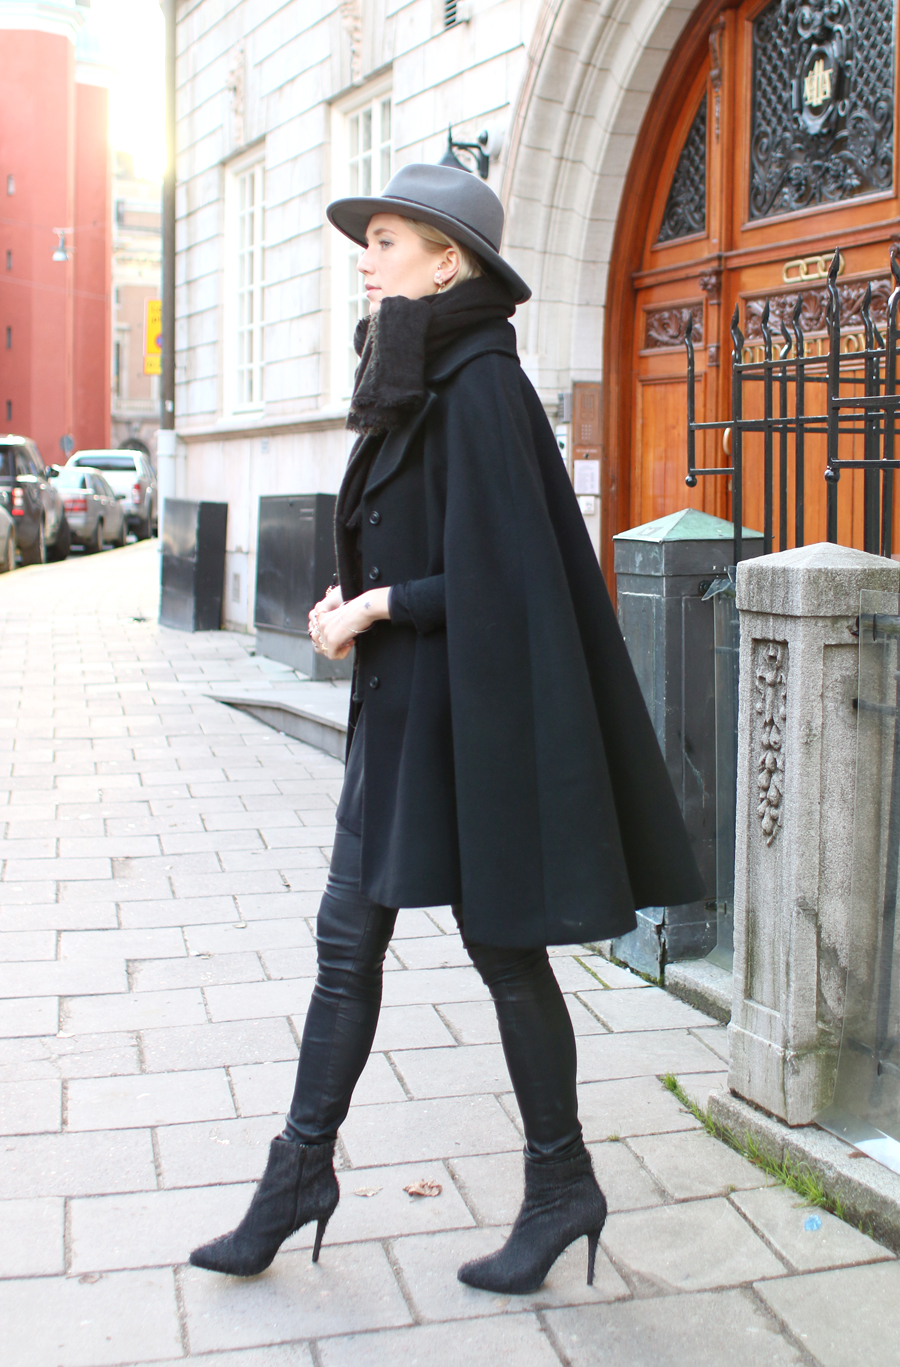 Cape Winter Trend: Josefin Dahlberg is wearing a black cape from Hunkydory